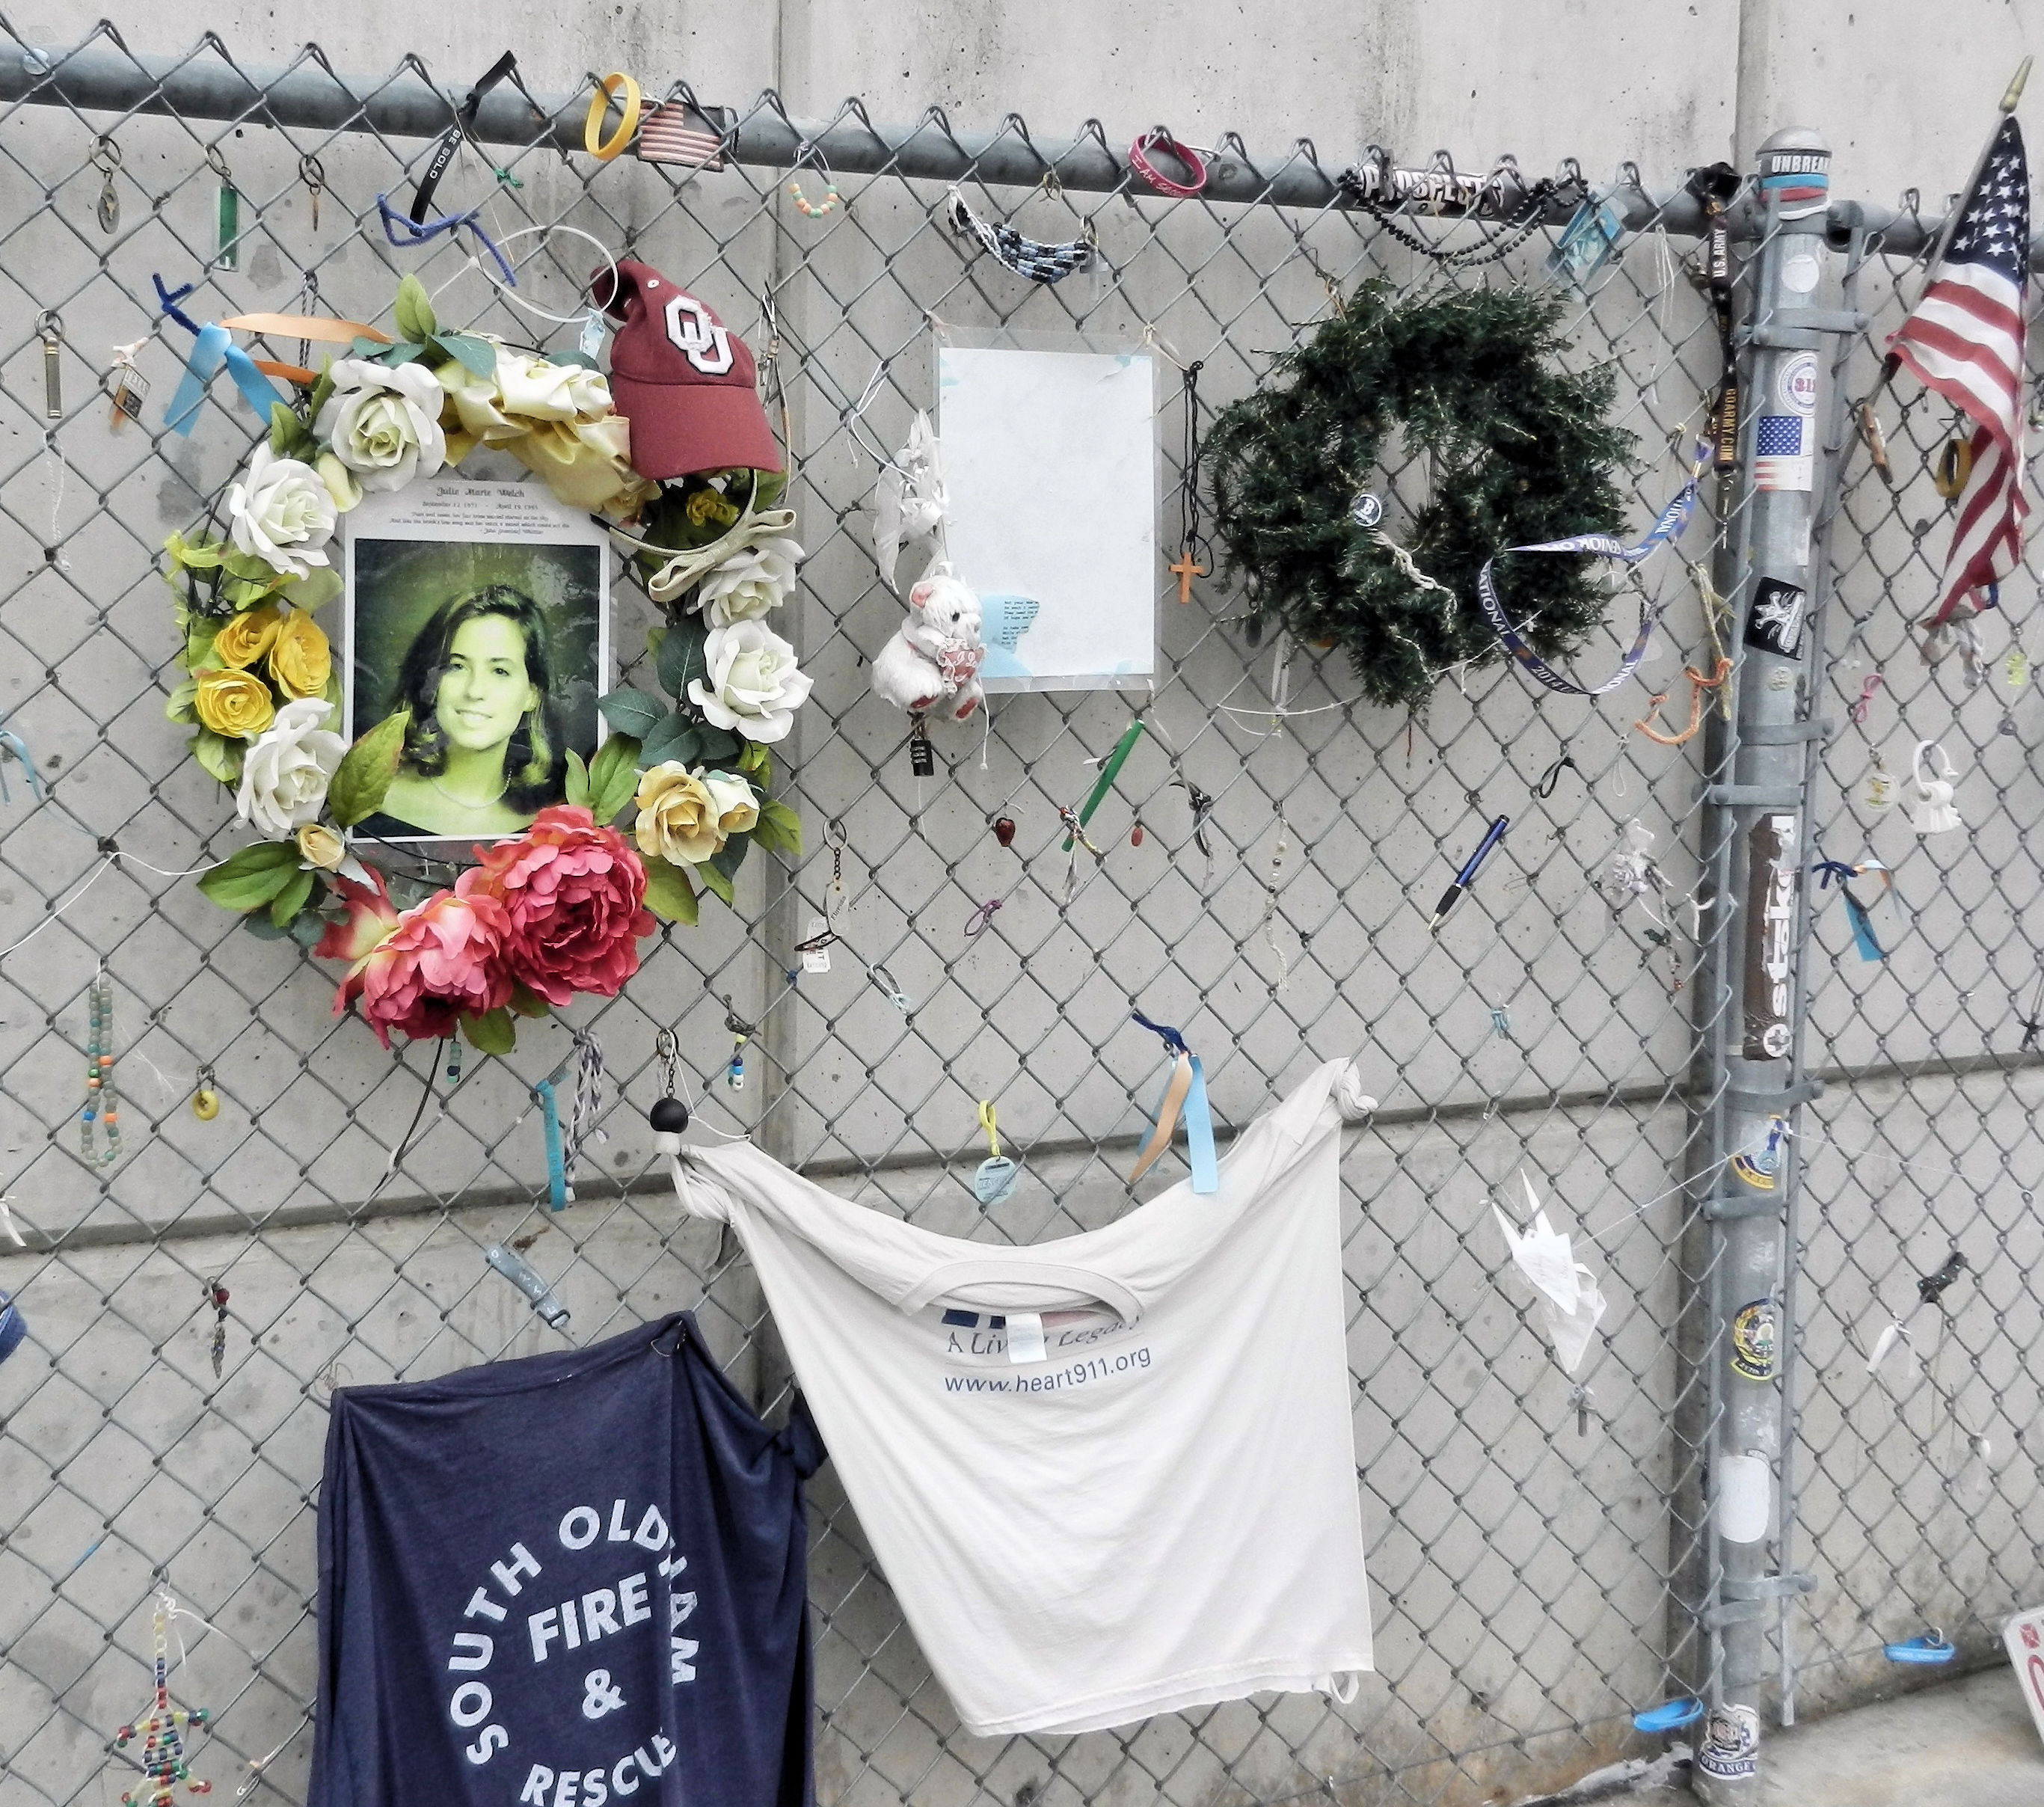 a chainlink fence with mementos-girl photo, teeshirts, wreaths, flag, toy